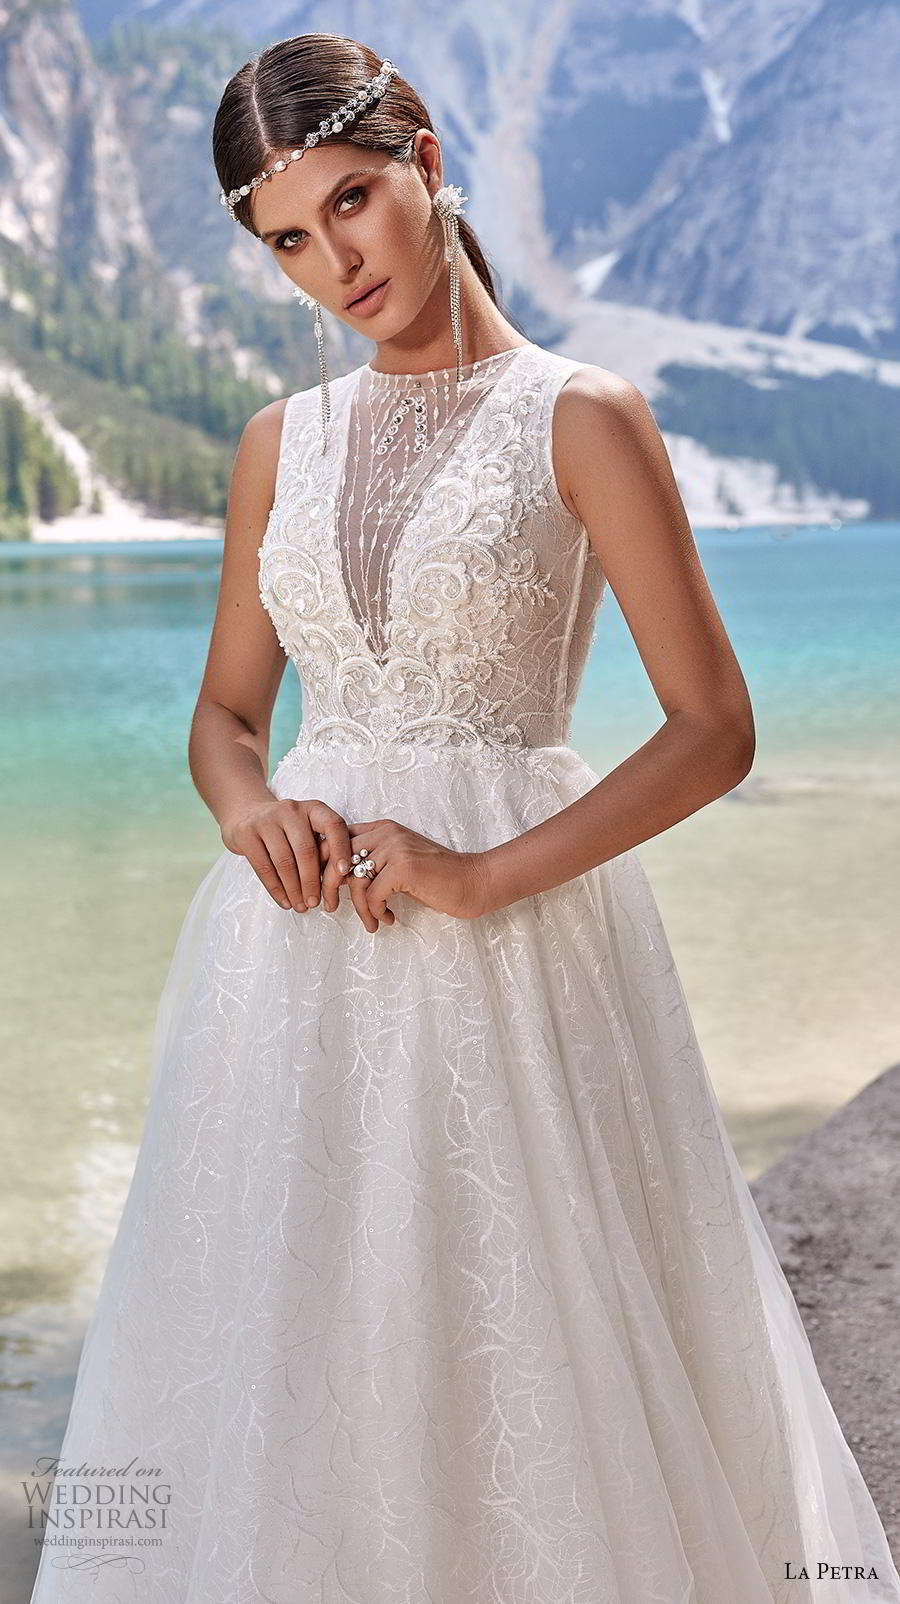 la petra 2020 bridal sleeveless illusion jewel deep v neck heavily embellished bodice elegant glamorous a  line wedding dress covered button back chapel train (2) zv